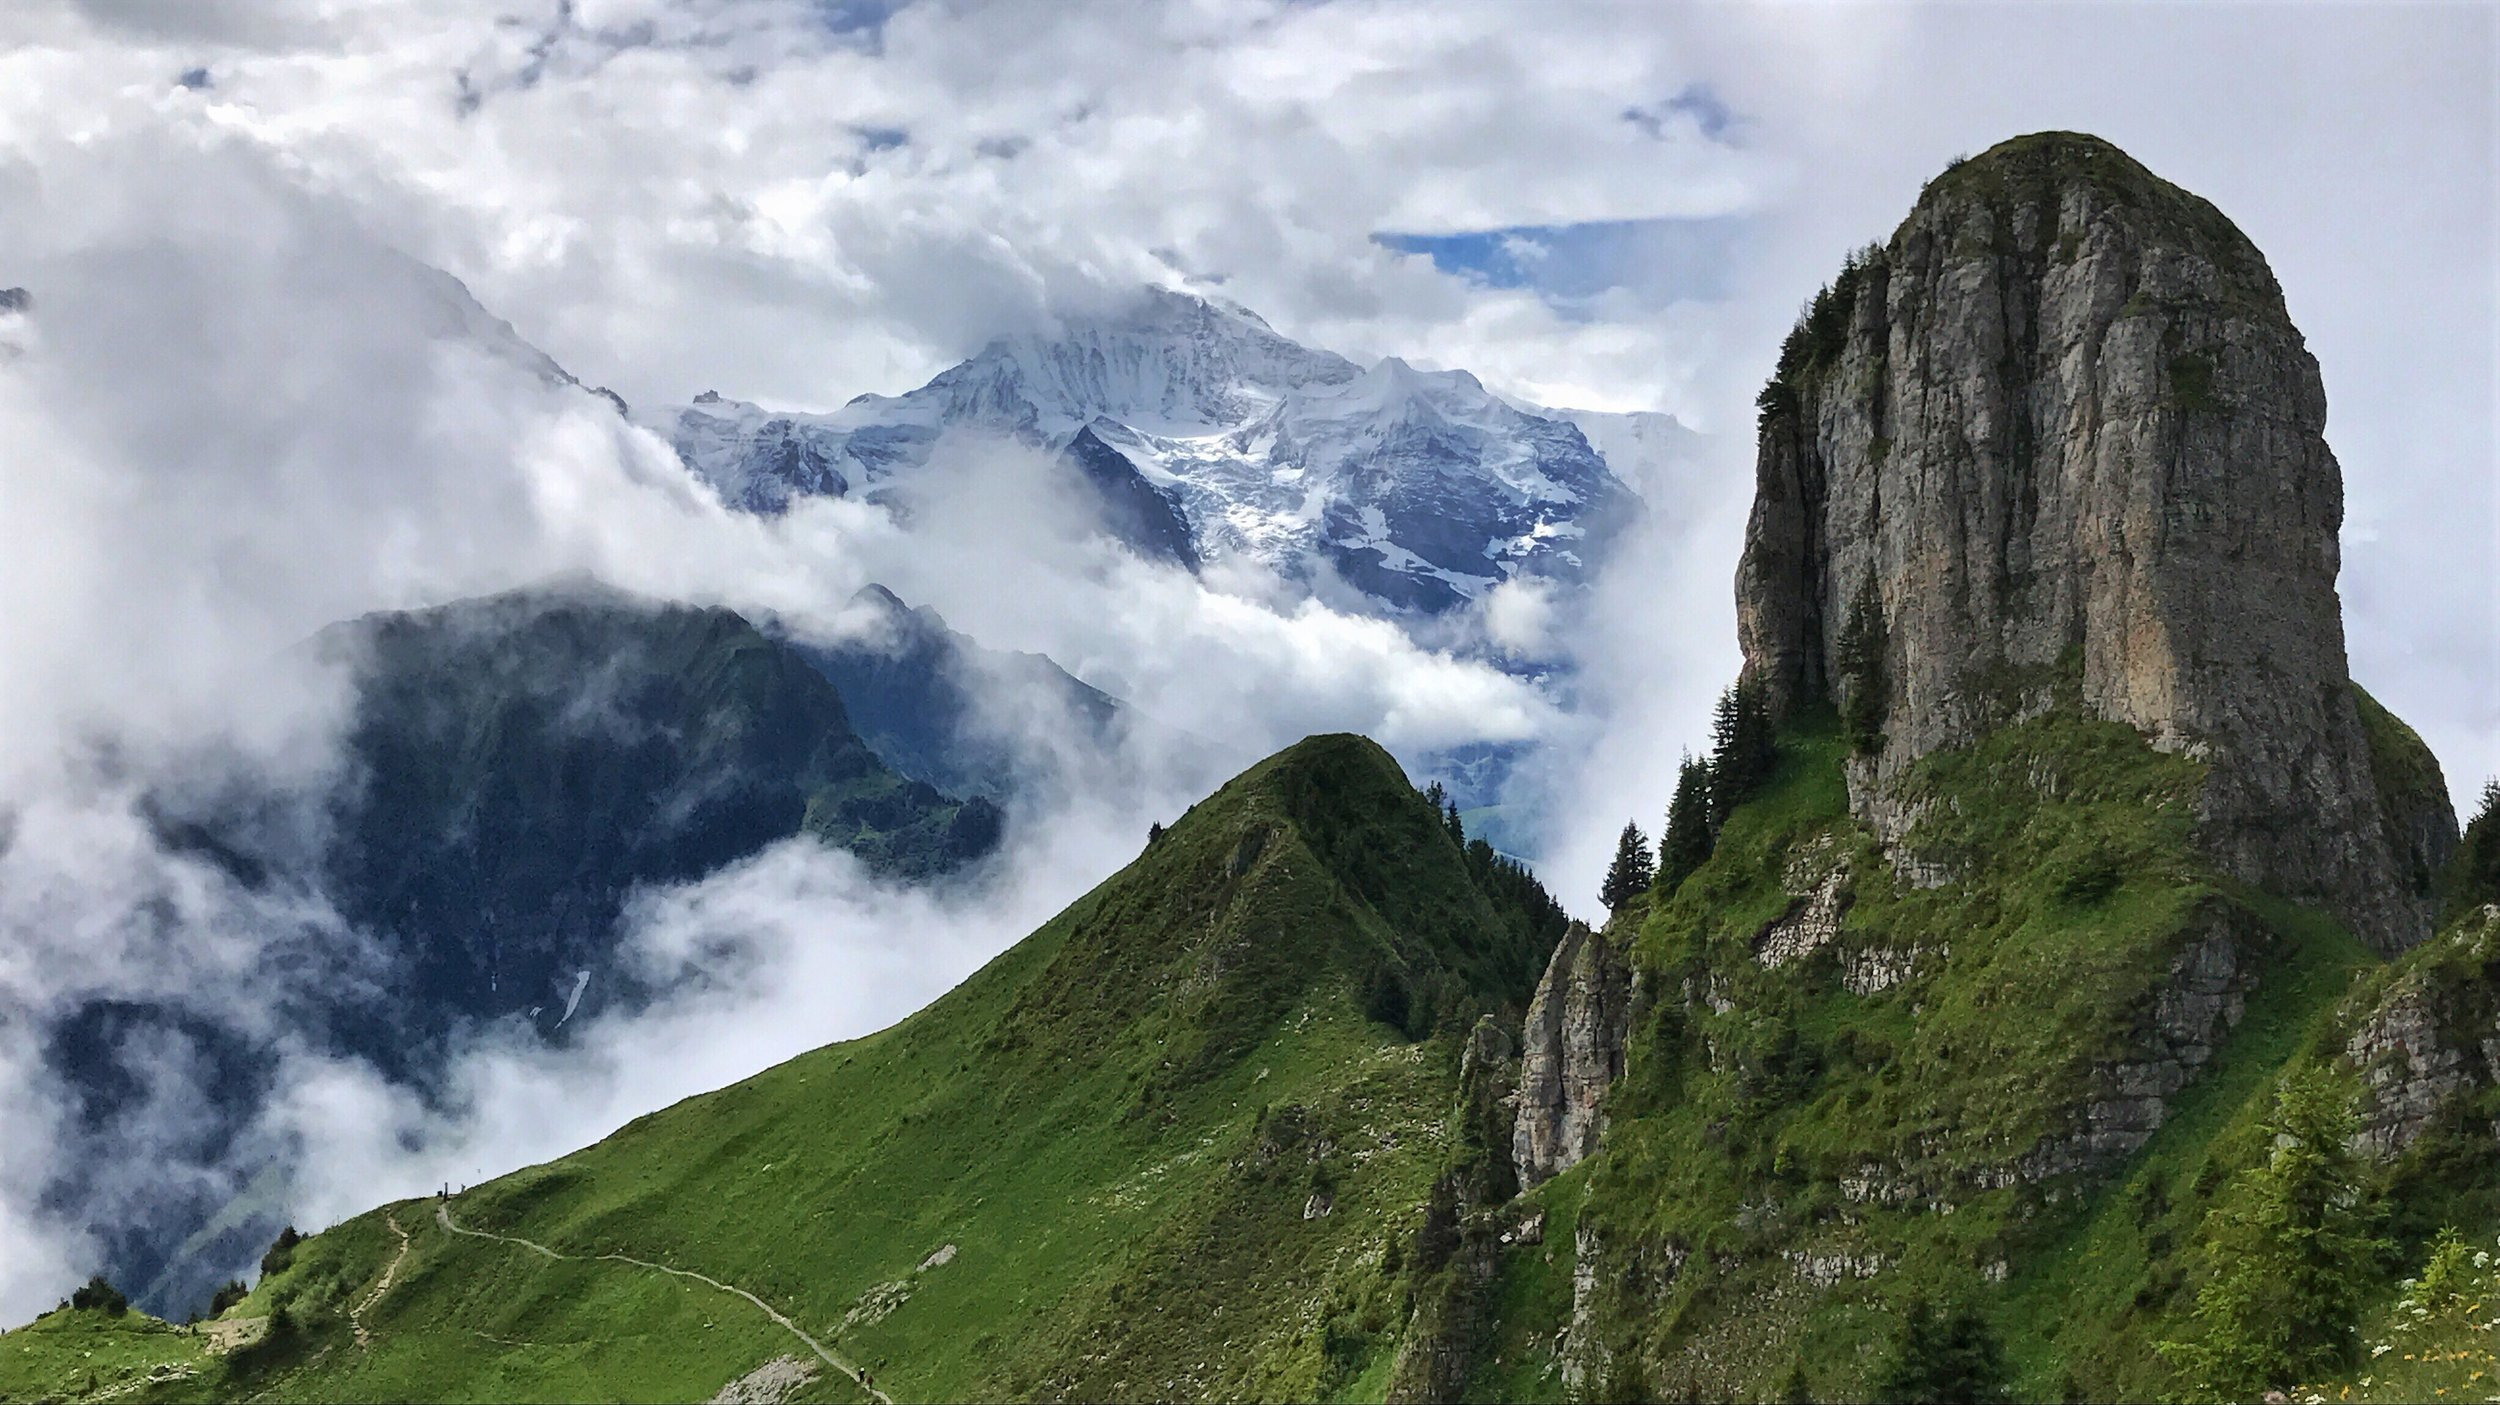 Top of Europe - Northern Italy & Epic Switzerland